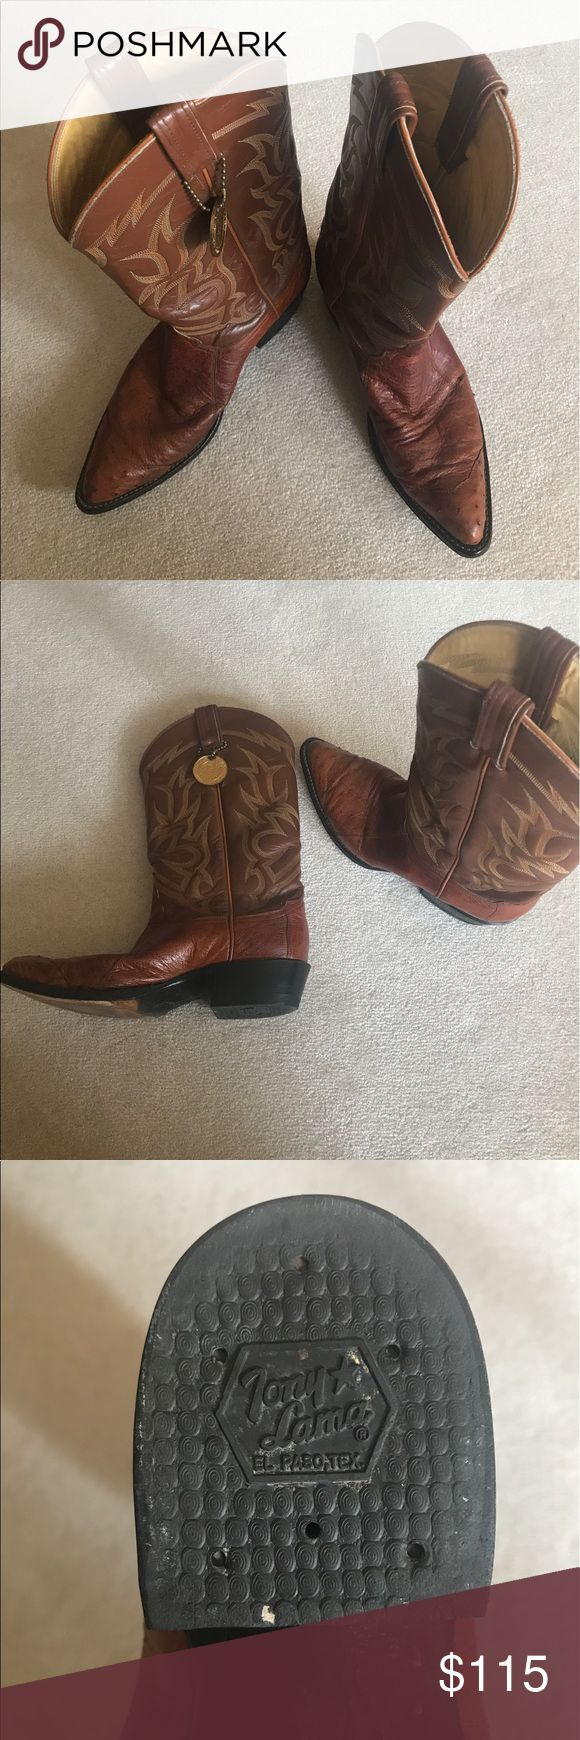 Tony Lama Ostrich Boats Tony Lama boots in exceptional condition. Worn very few times. Tony Lama Shoes Cowboy & Western Boots